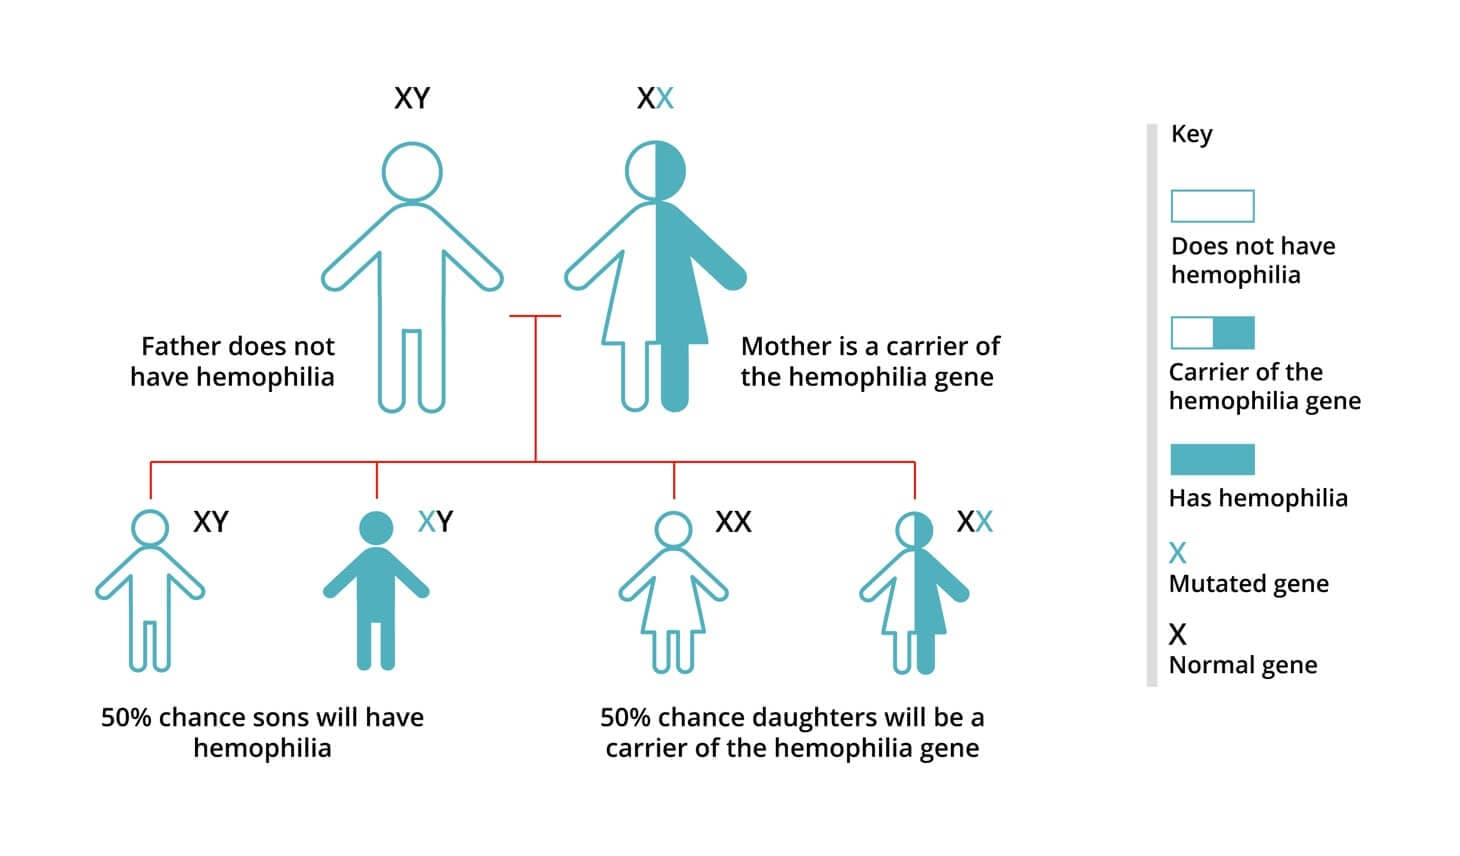 Hemophilia is an inherited disorder that is more common in males.